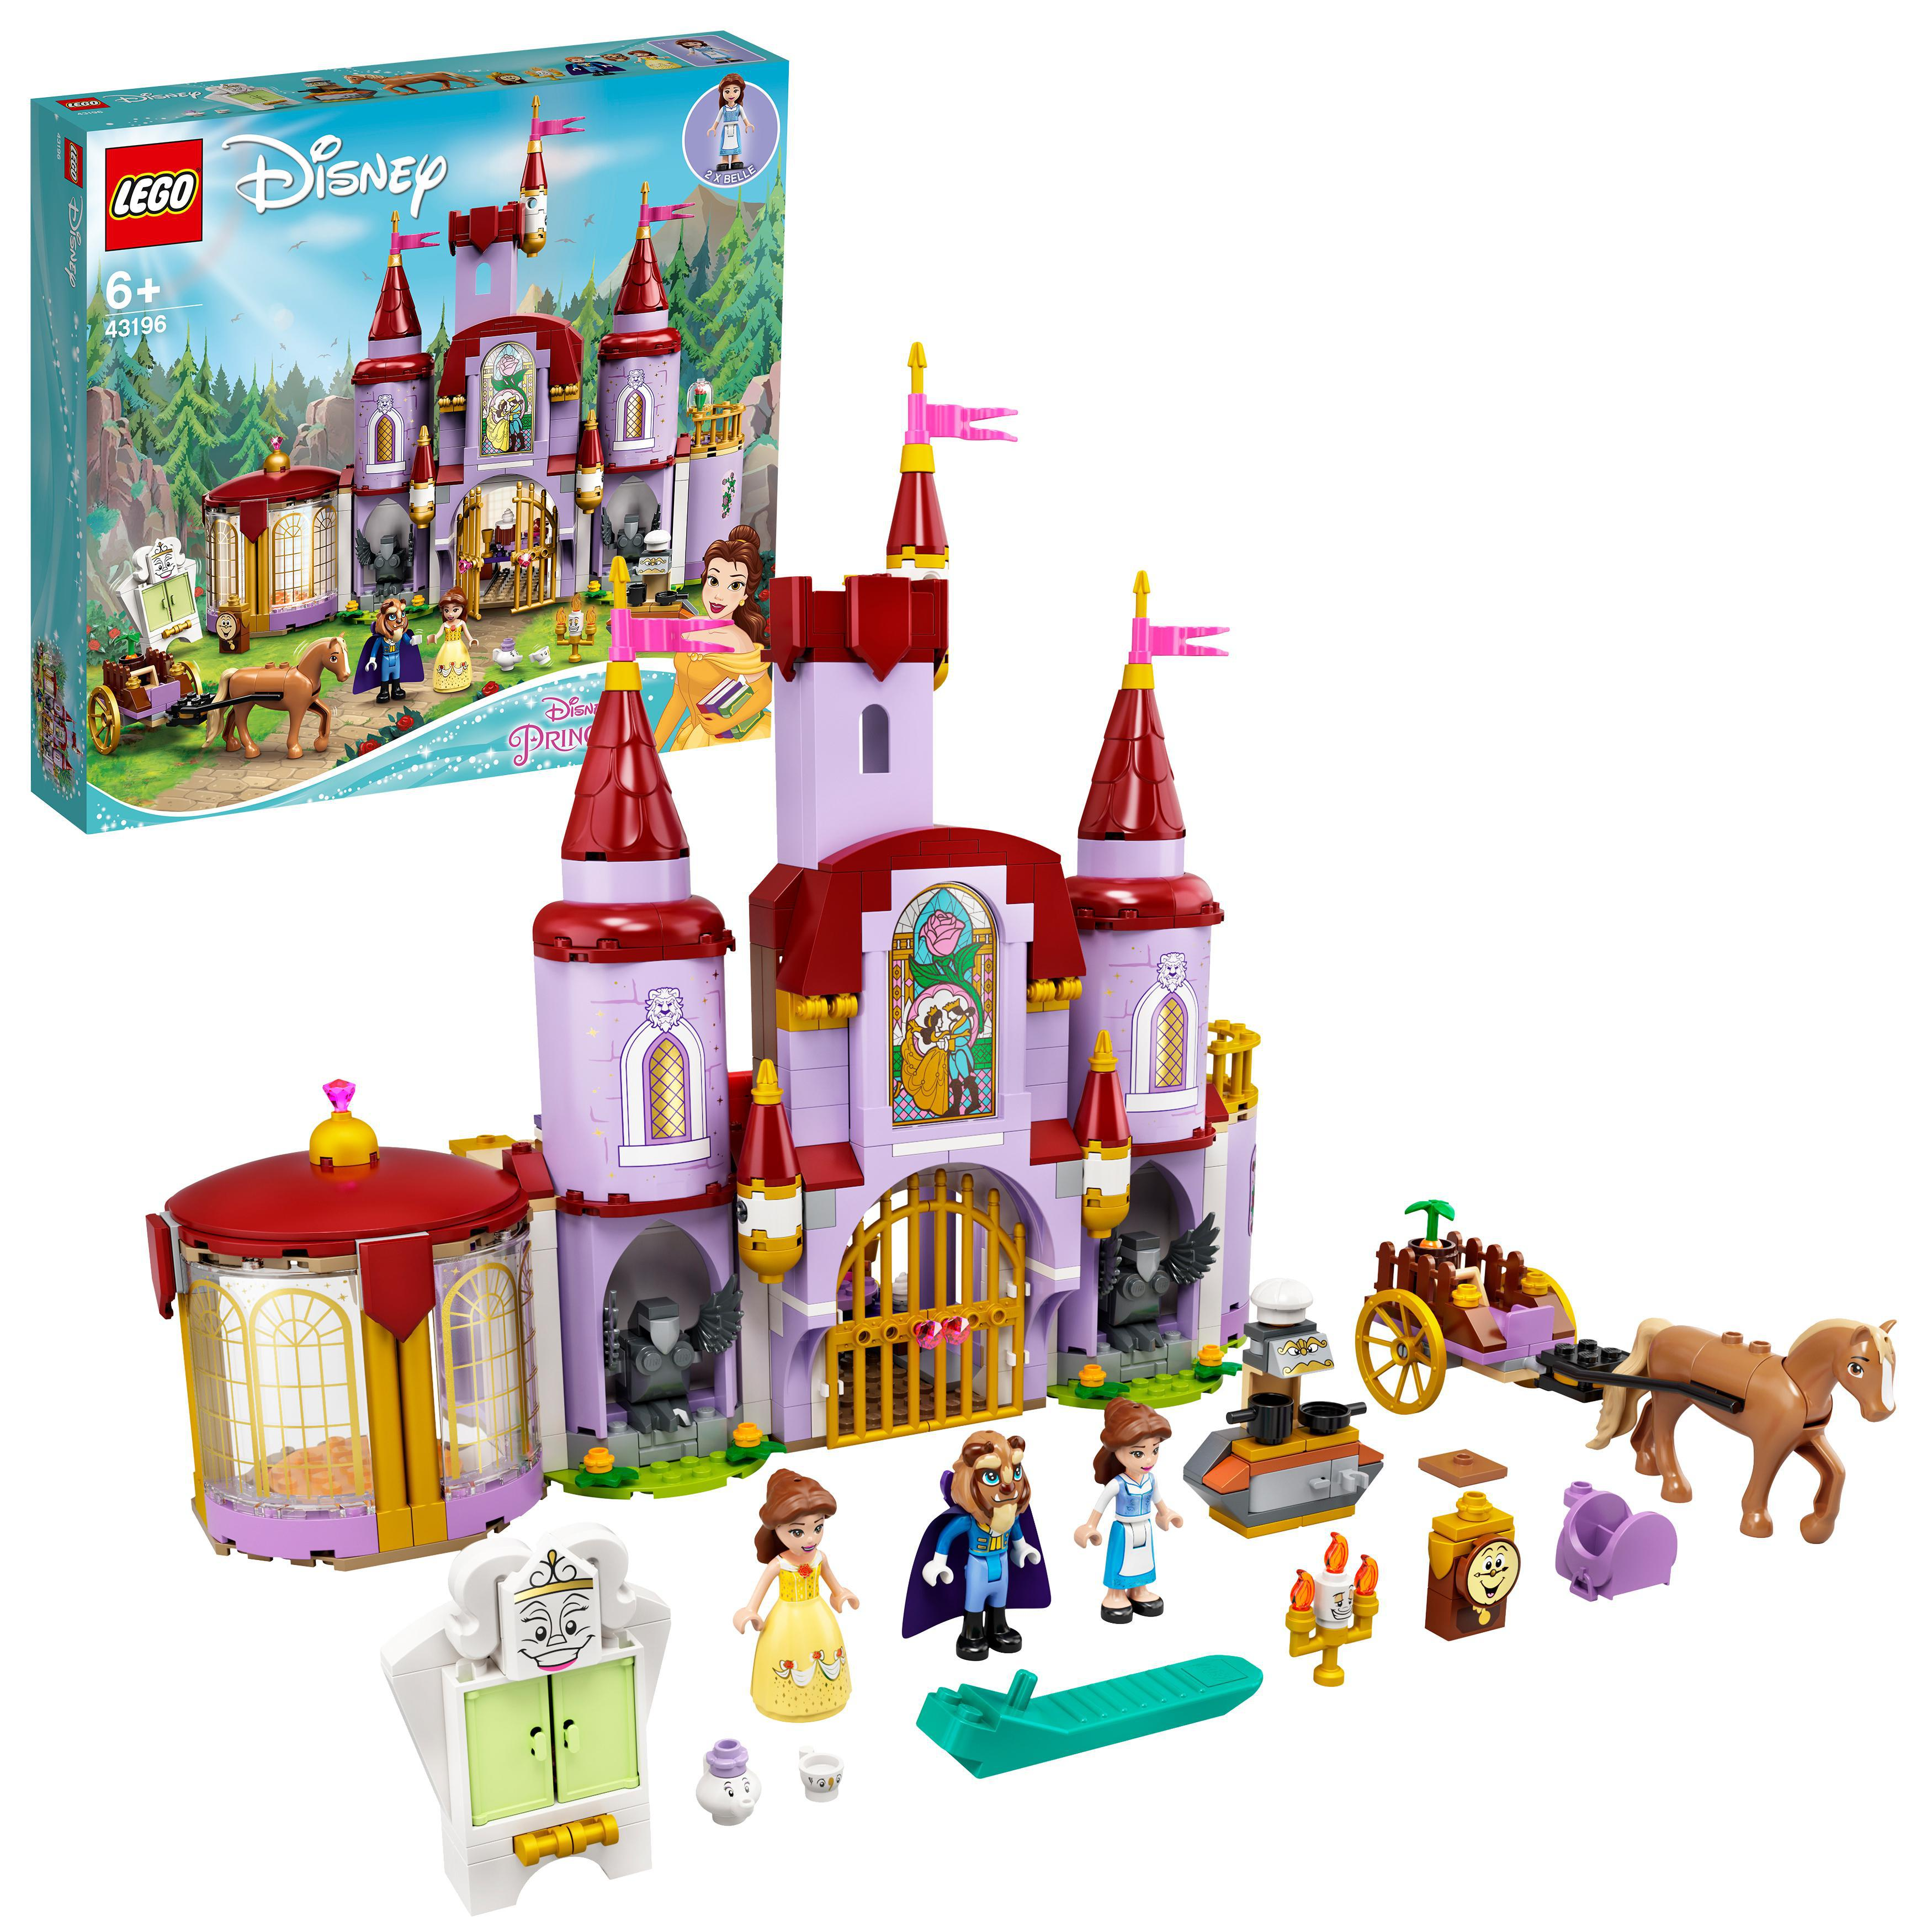 LEGO Disney Princess - Belle and the Beast's Castle (43196)